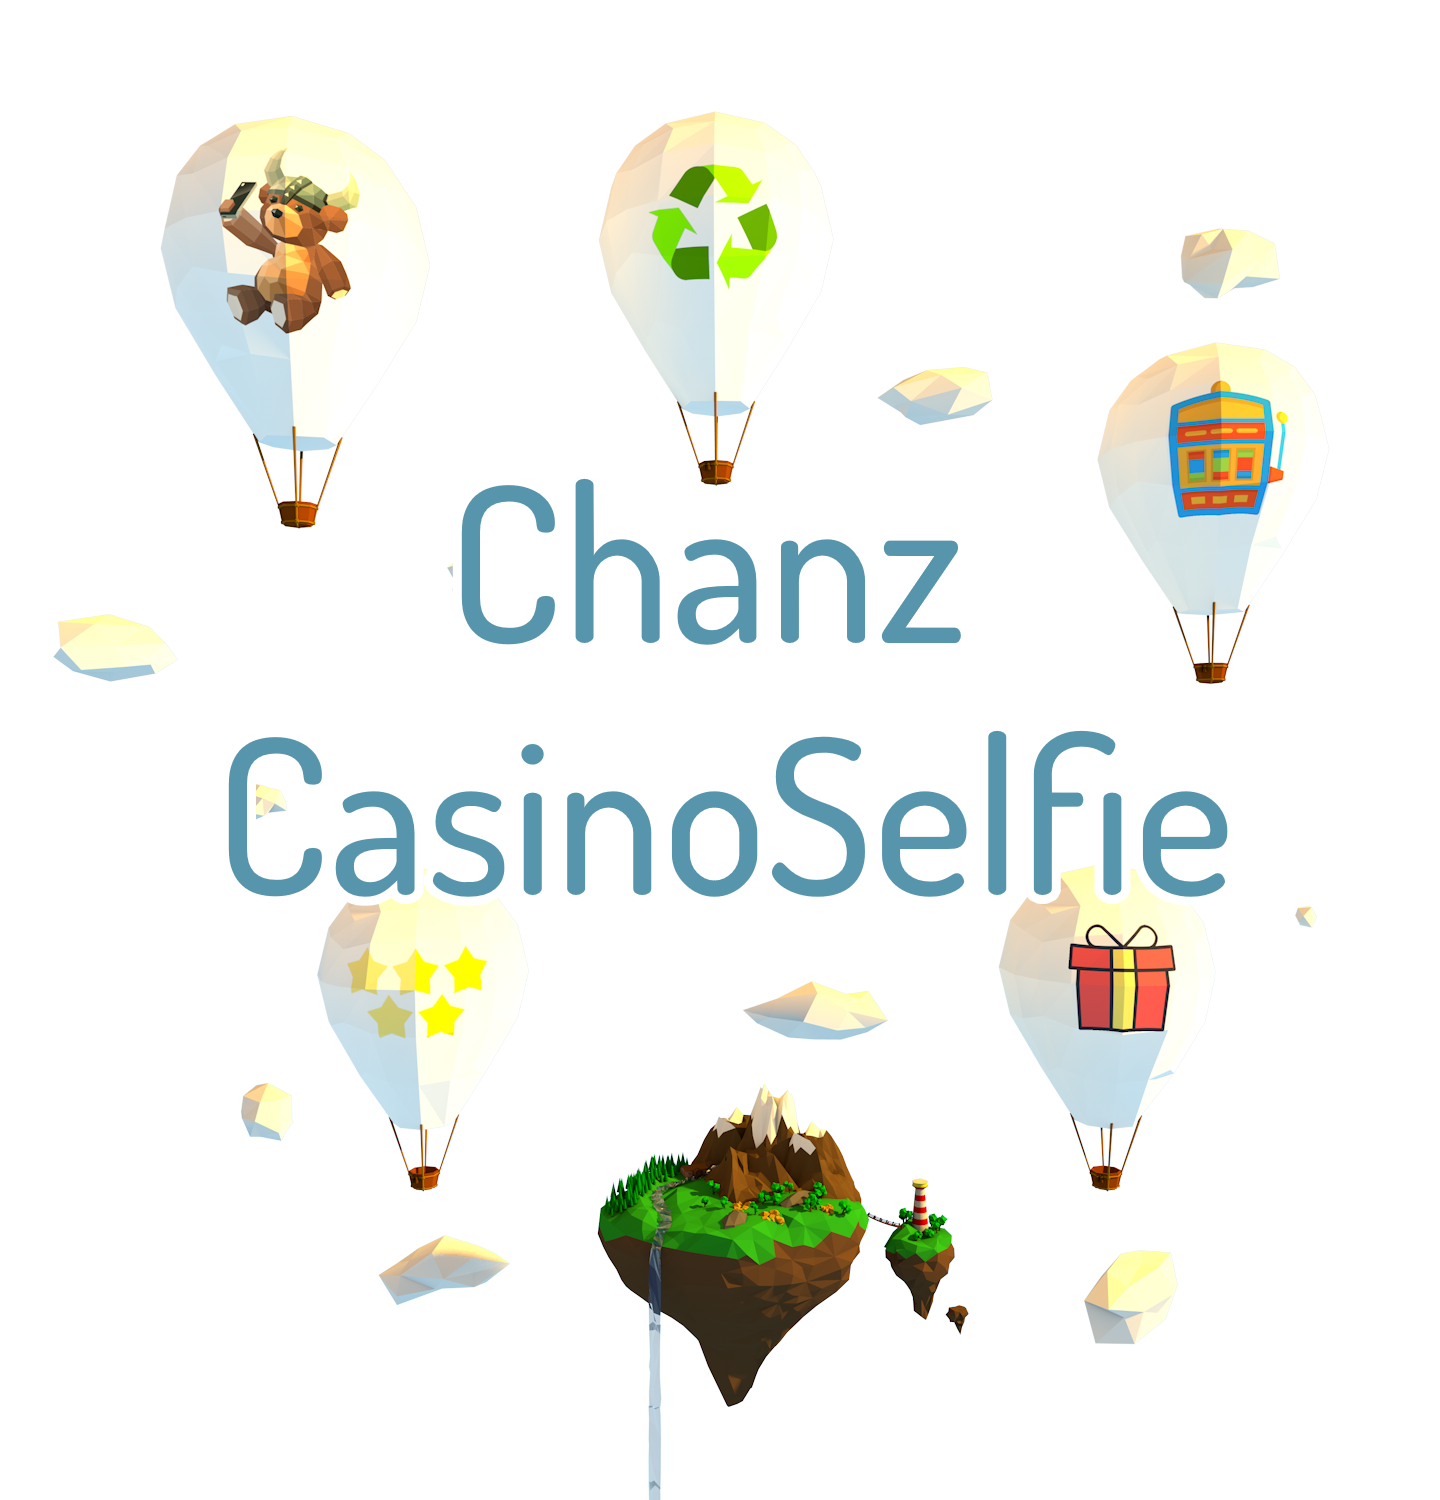 Chanz casino omtale